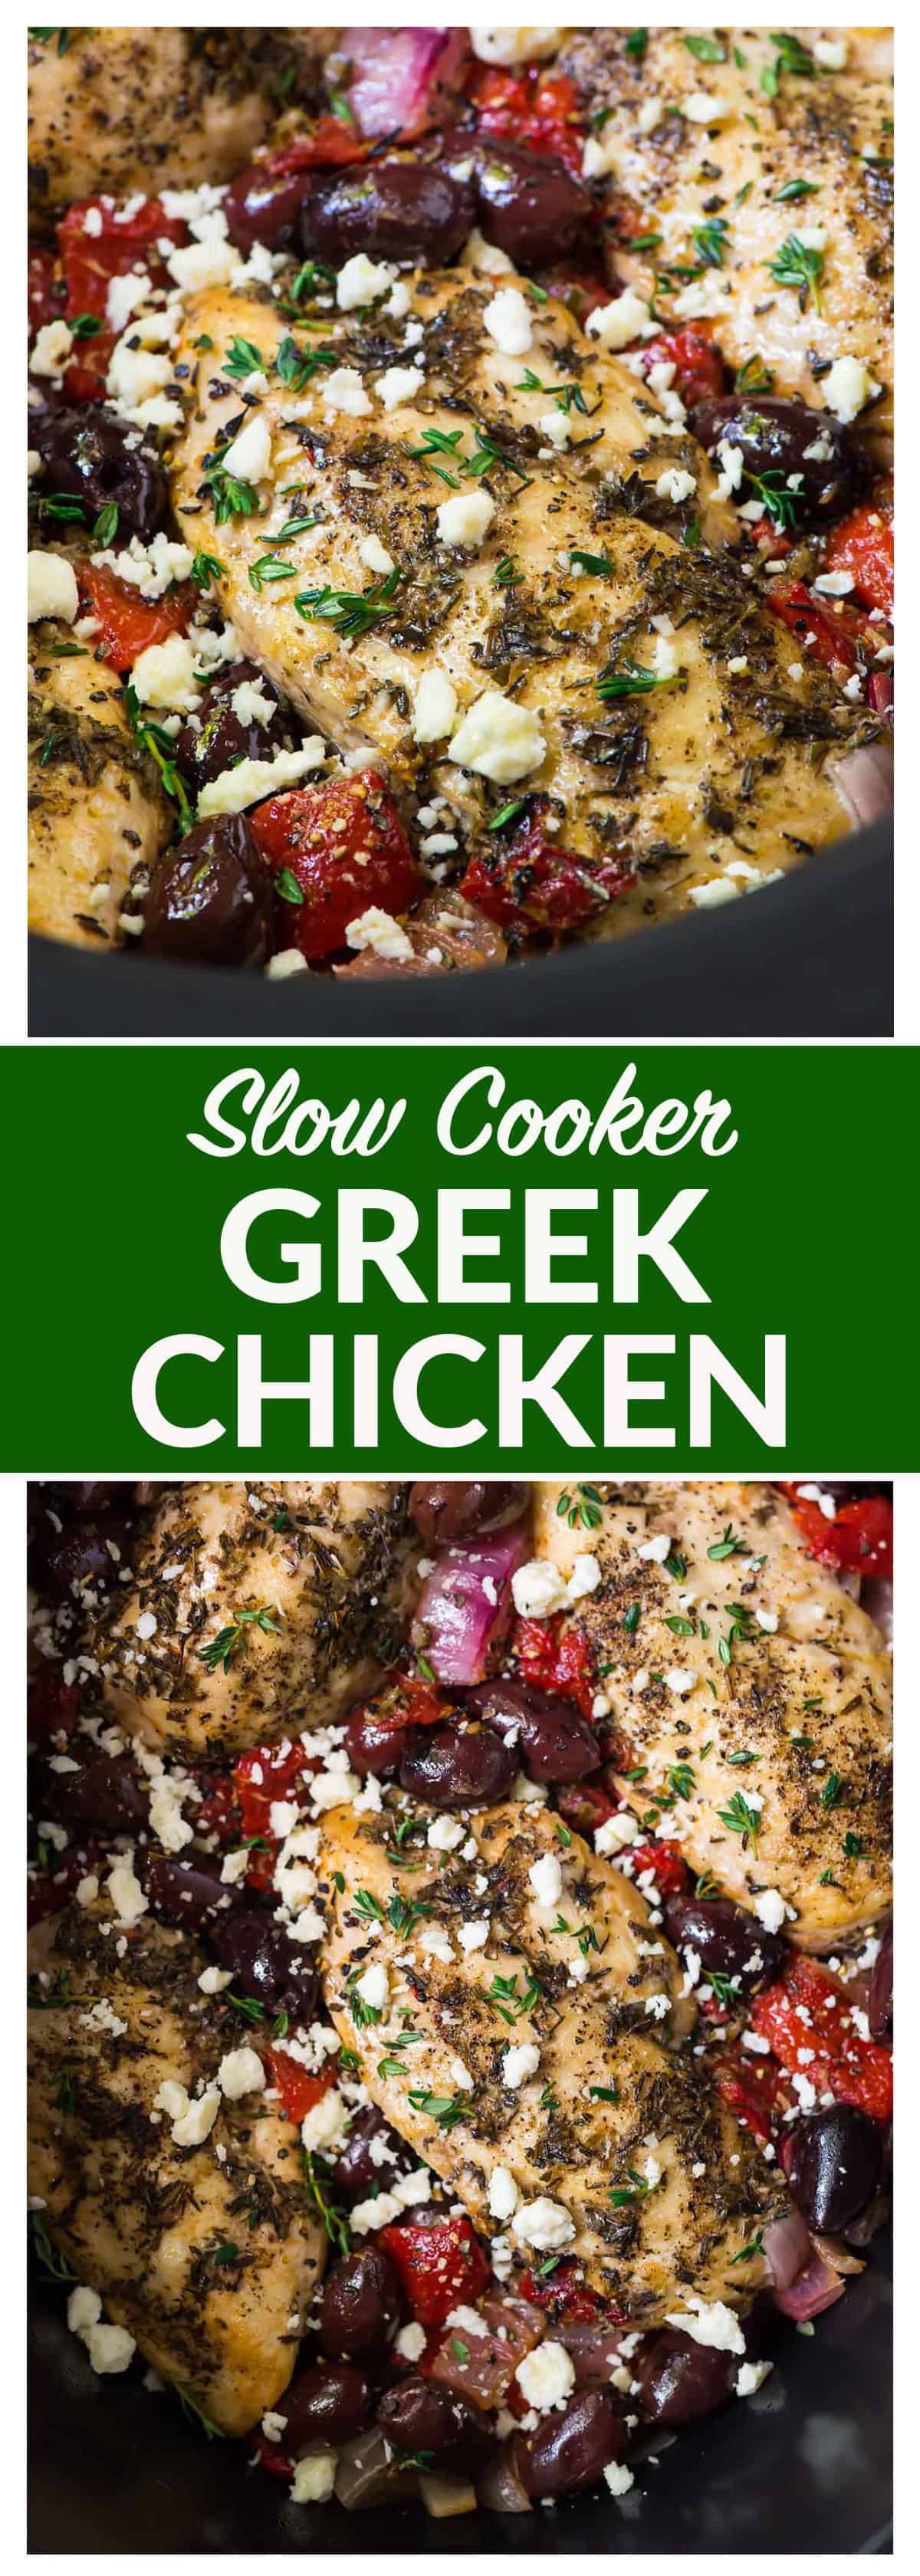 Slow Cooker Greek Chicken – moist, juicy chicken with a bright Mediterranean flavors, roasted red peppers, and feta. Easy, healthy, and absolutely delicious crockpot recipe! Recipe at wellplated.com #crockpot #slowcooker #chicken #healthyrecipe